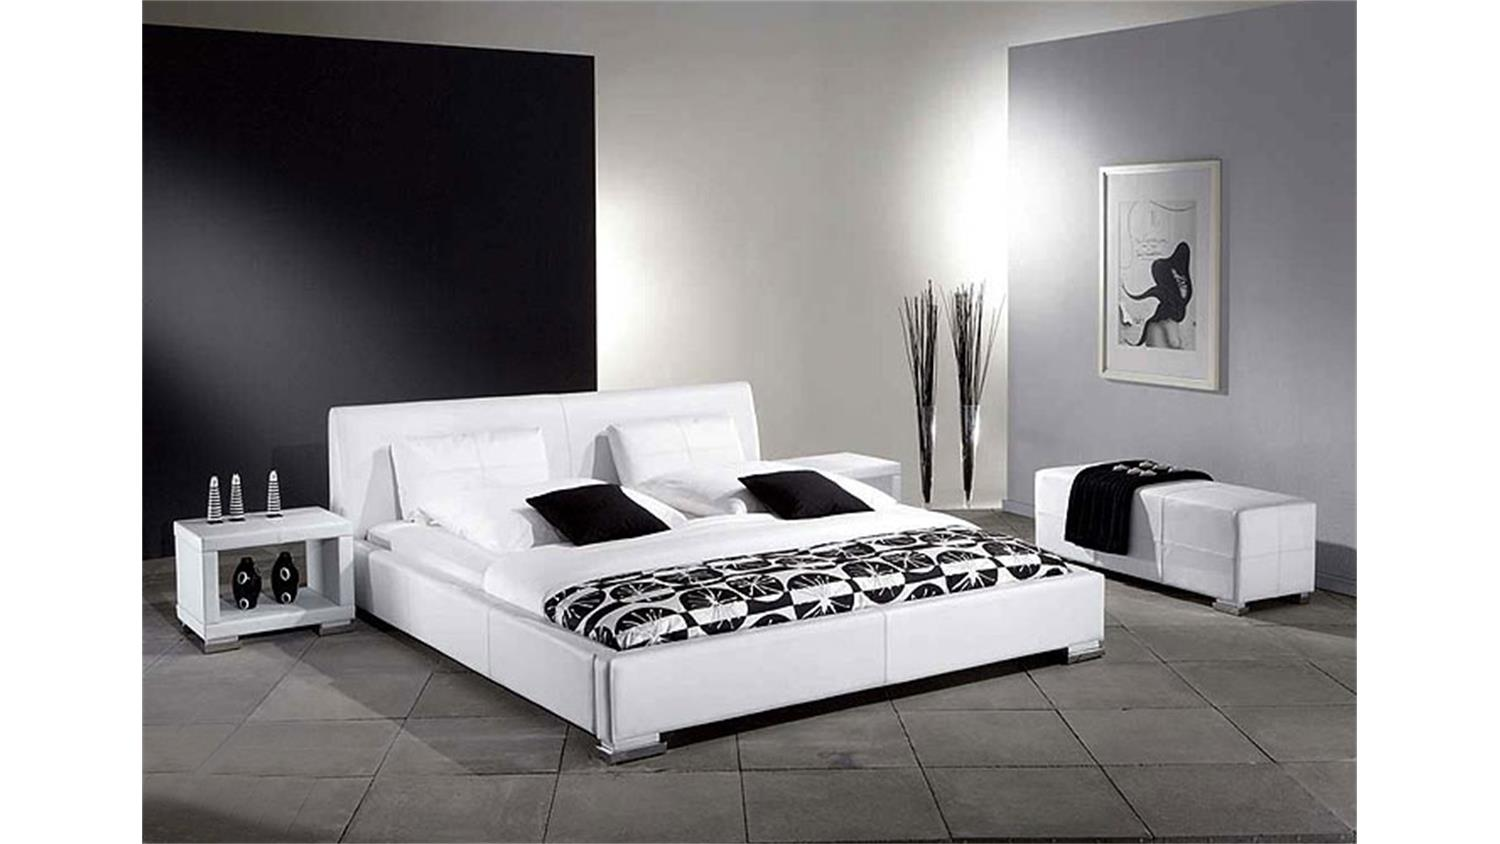 polsterbett delgado bett doppelbett in wei 180x200 cm. Black Bedroom Furniture Sets. Home Design Ideas